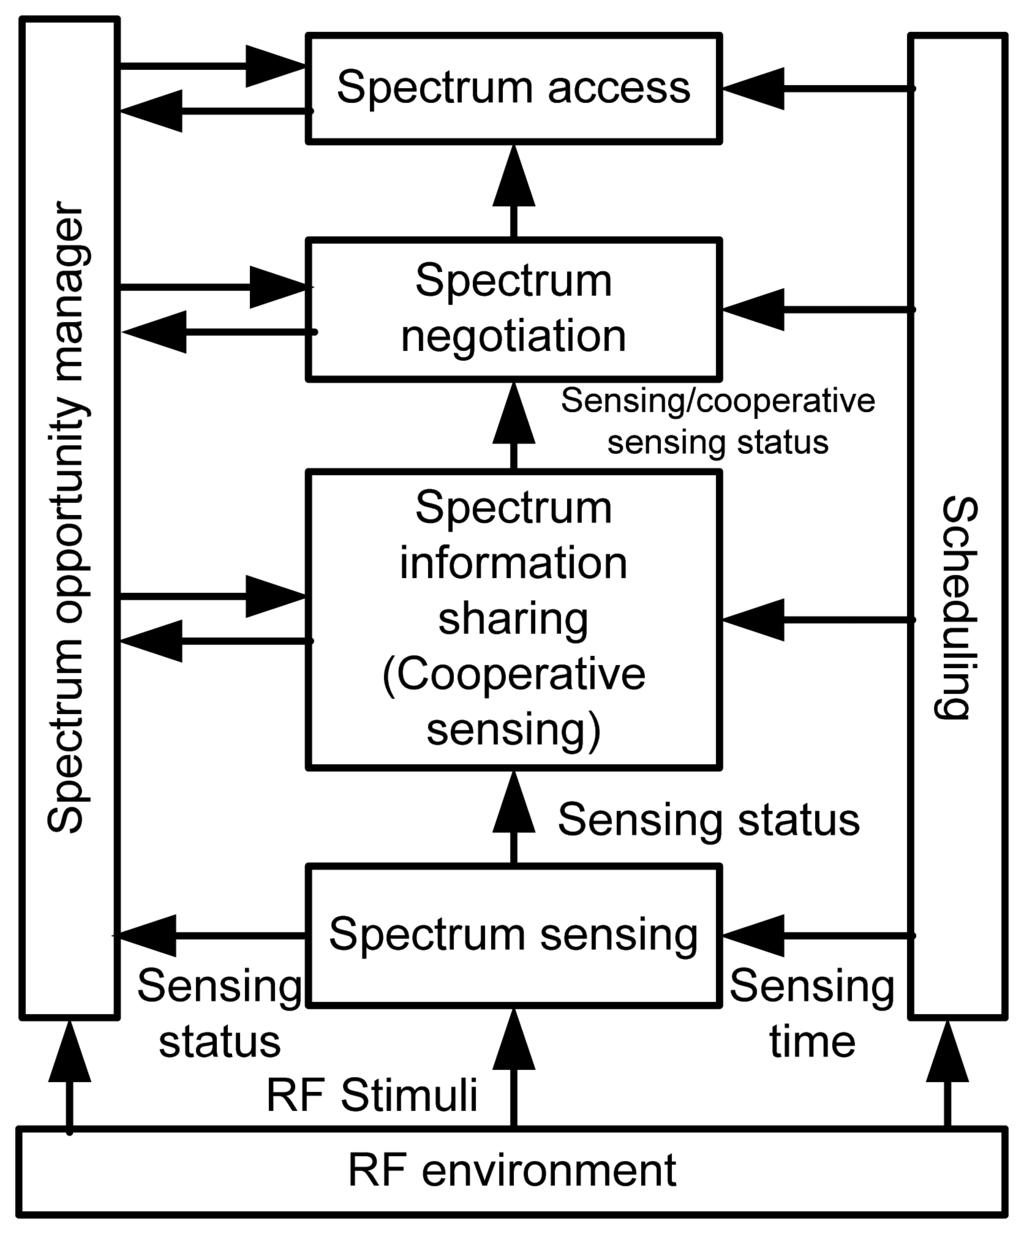 spectrum sensing and spectrum sensing techniques International research journal of engineering and technology (irjet) e-issn: 2395 -0056 volume: 02 issue: 05 | aug-2015 wwwirjetnet.